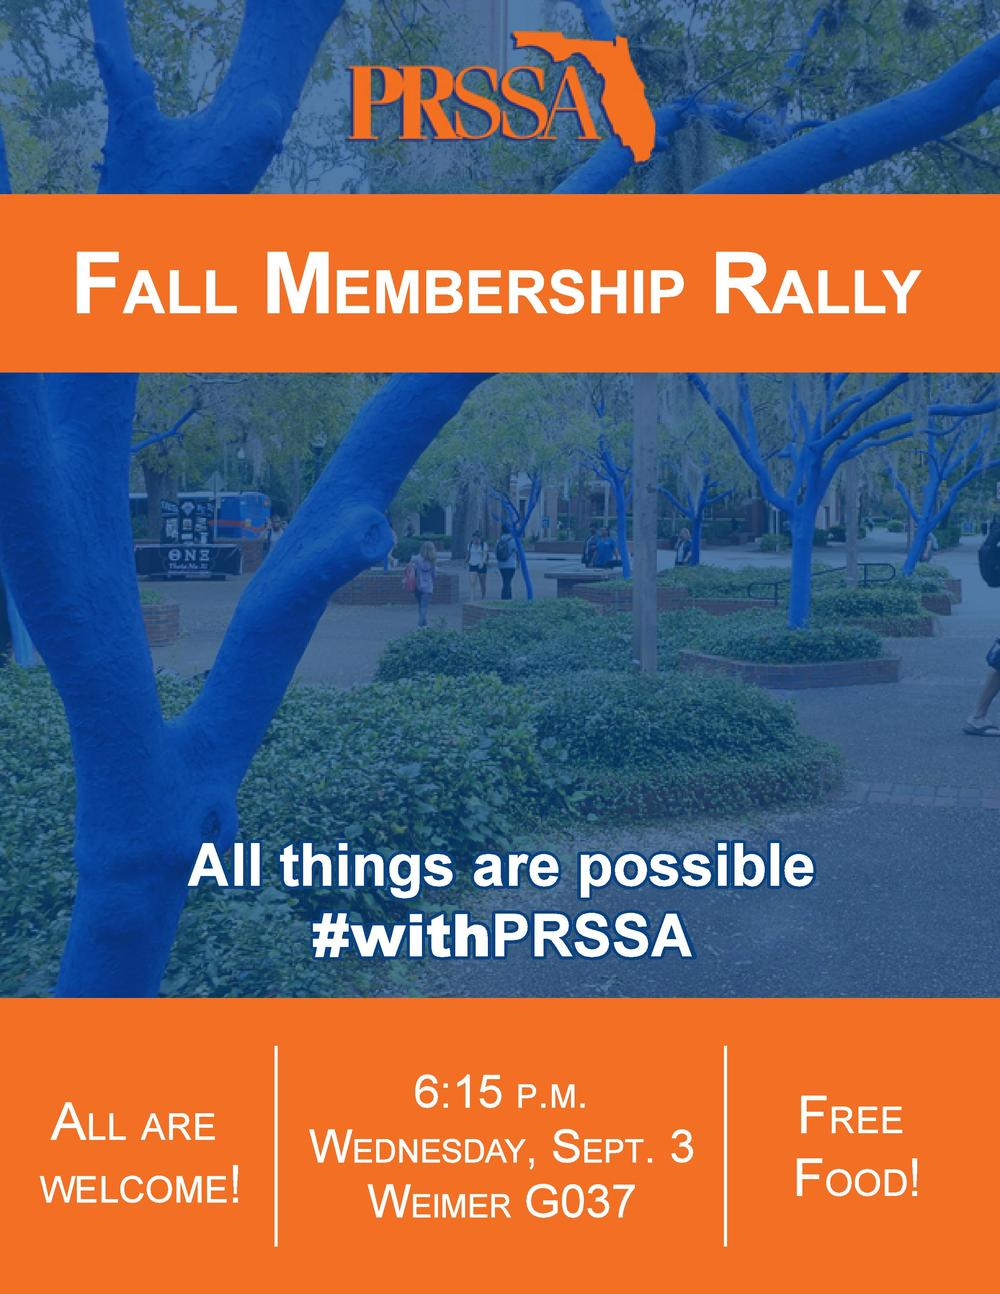 fall-membership-rally-flier-2-page-0011.jpg